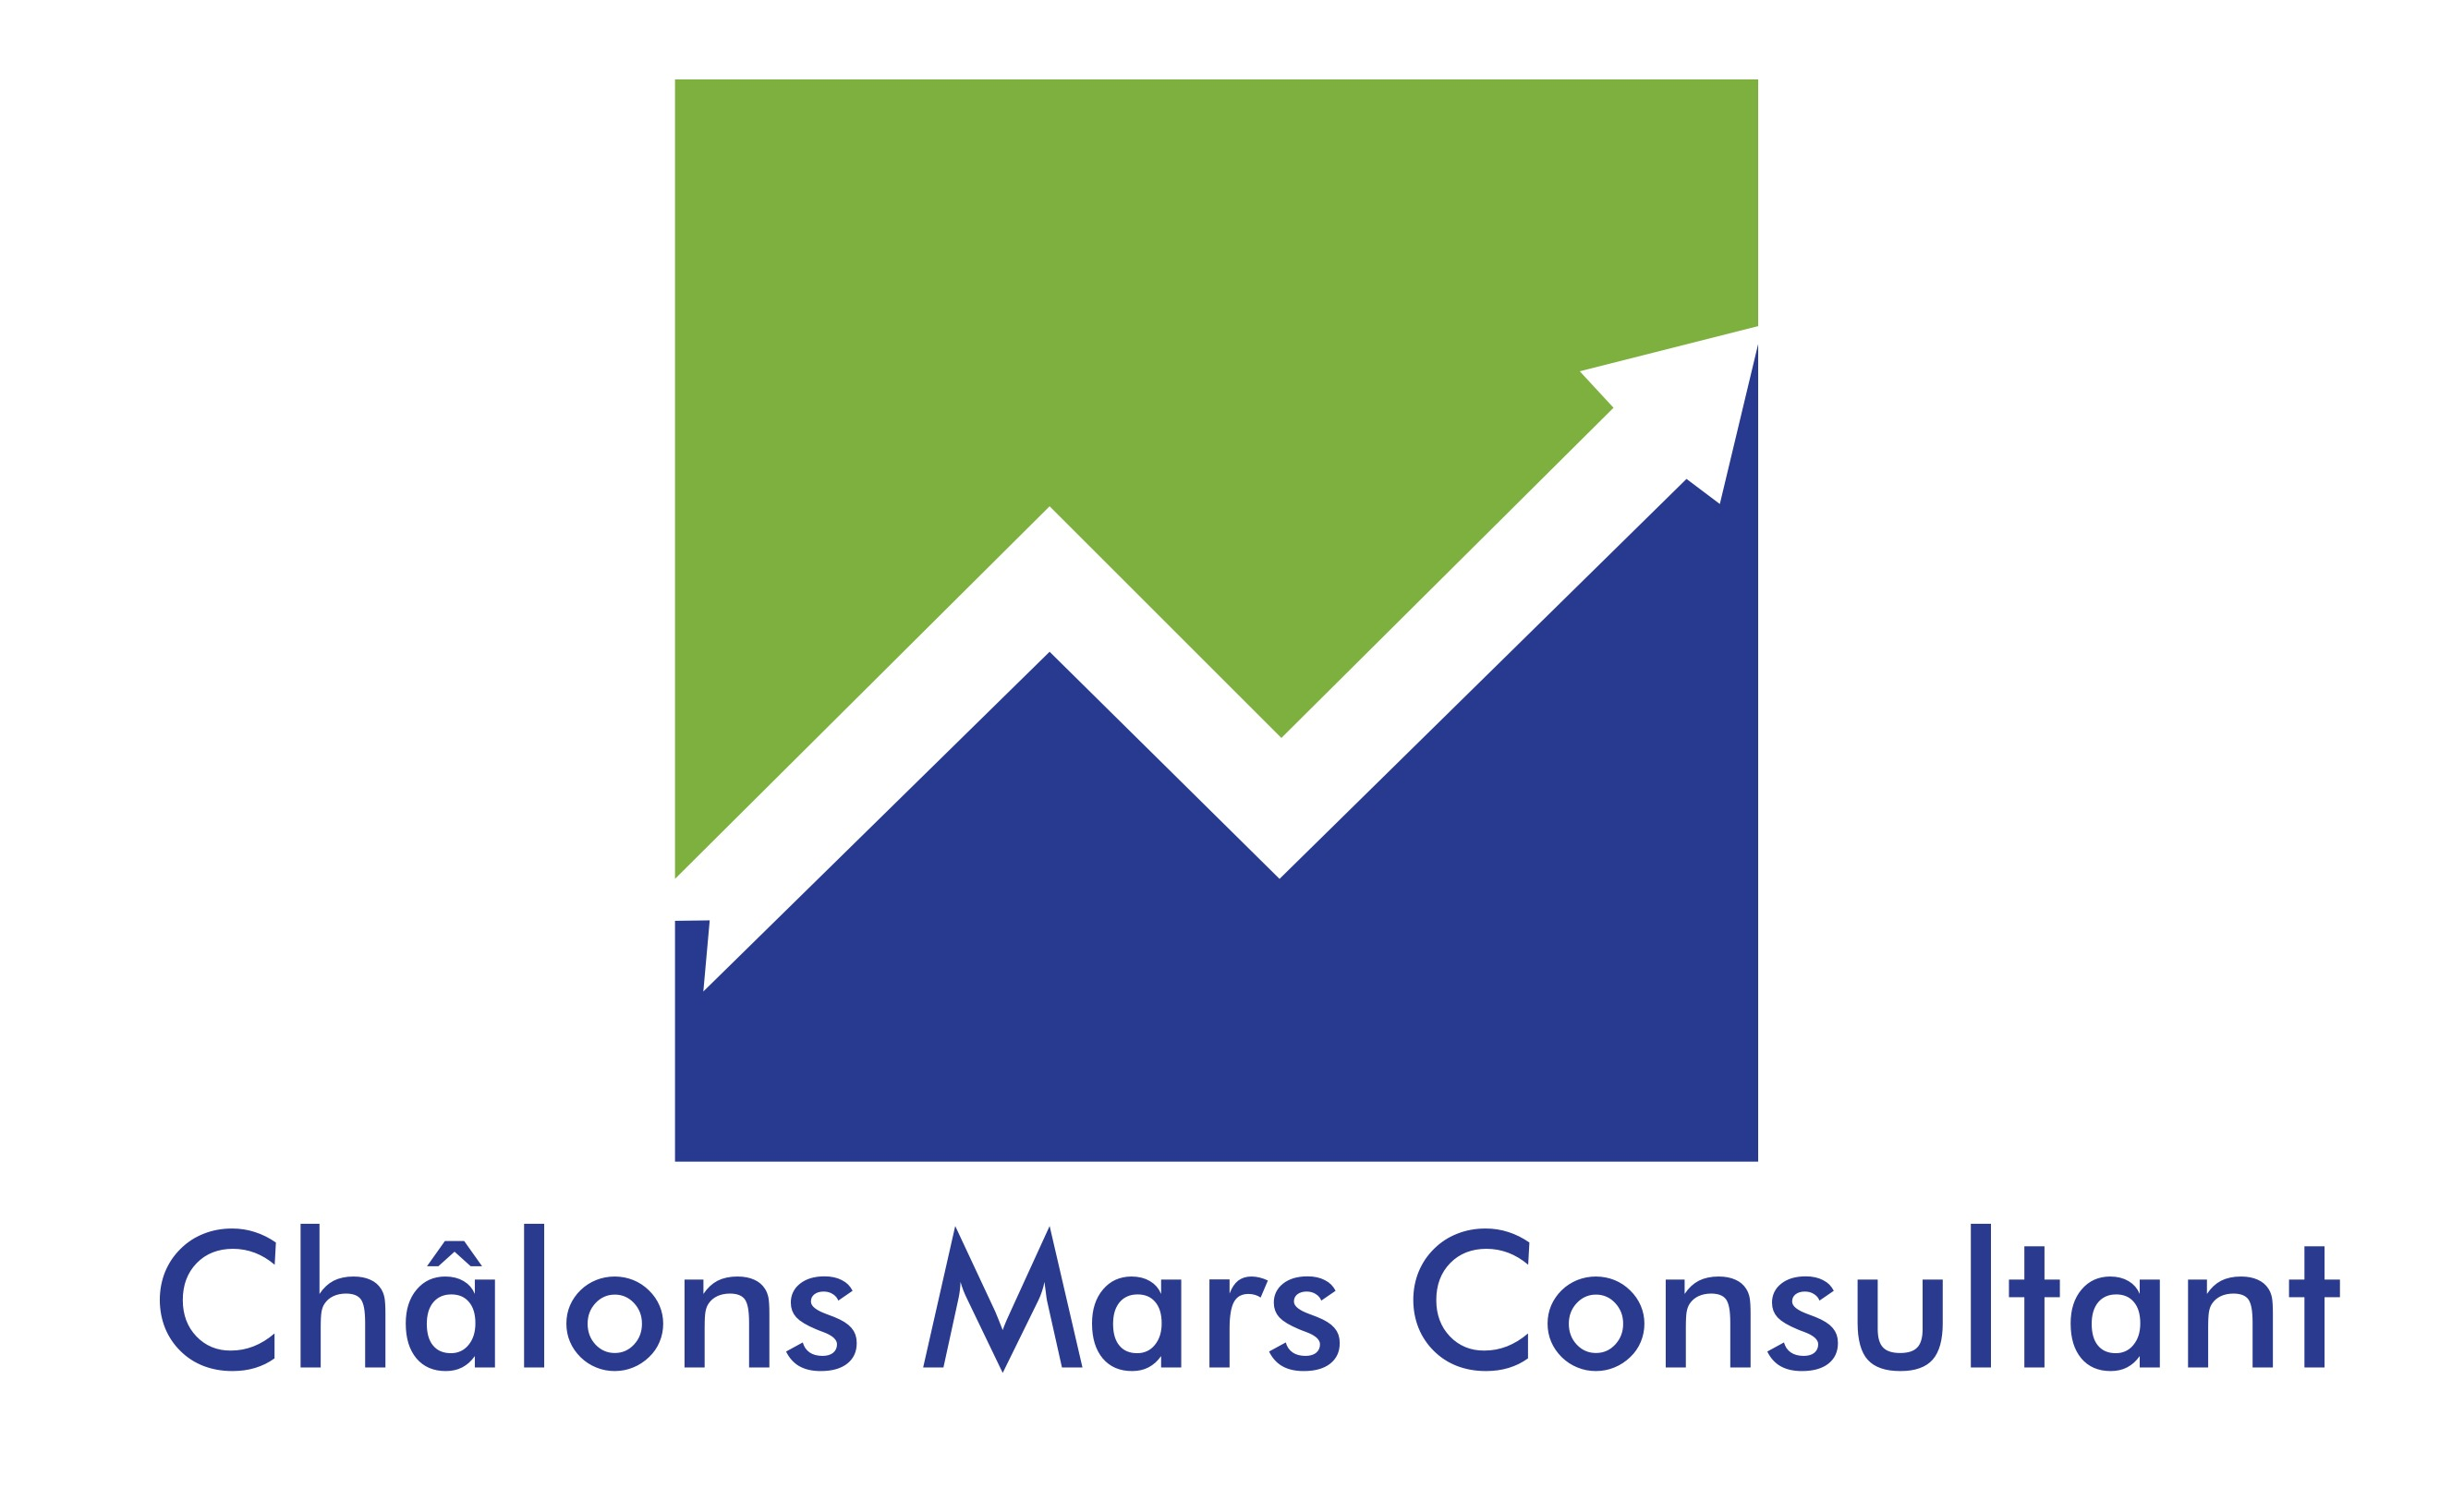 Centre CHALONS MARS CONSULTANT